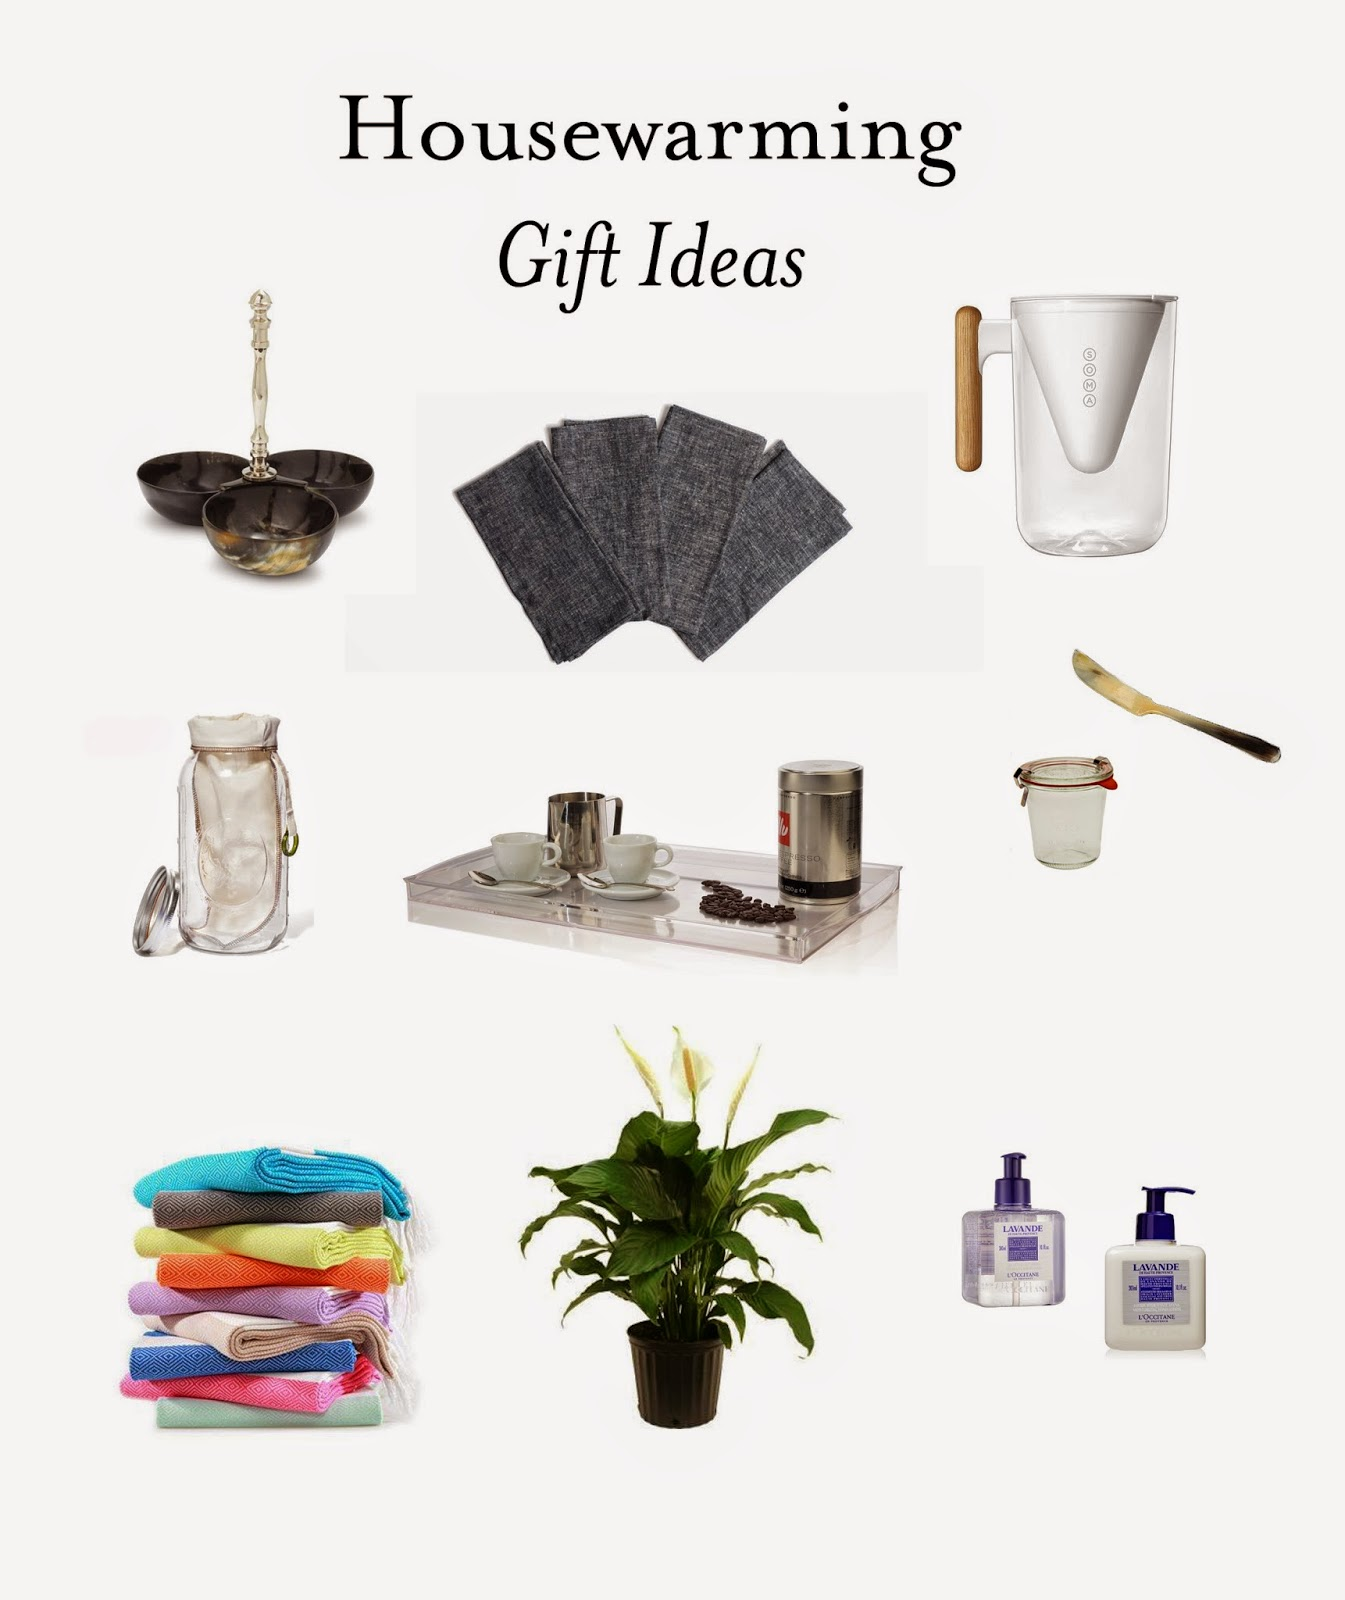 MakingMe Housewarming Gift Ideas